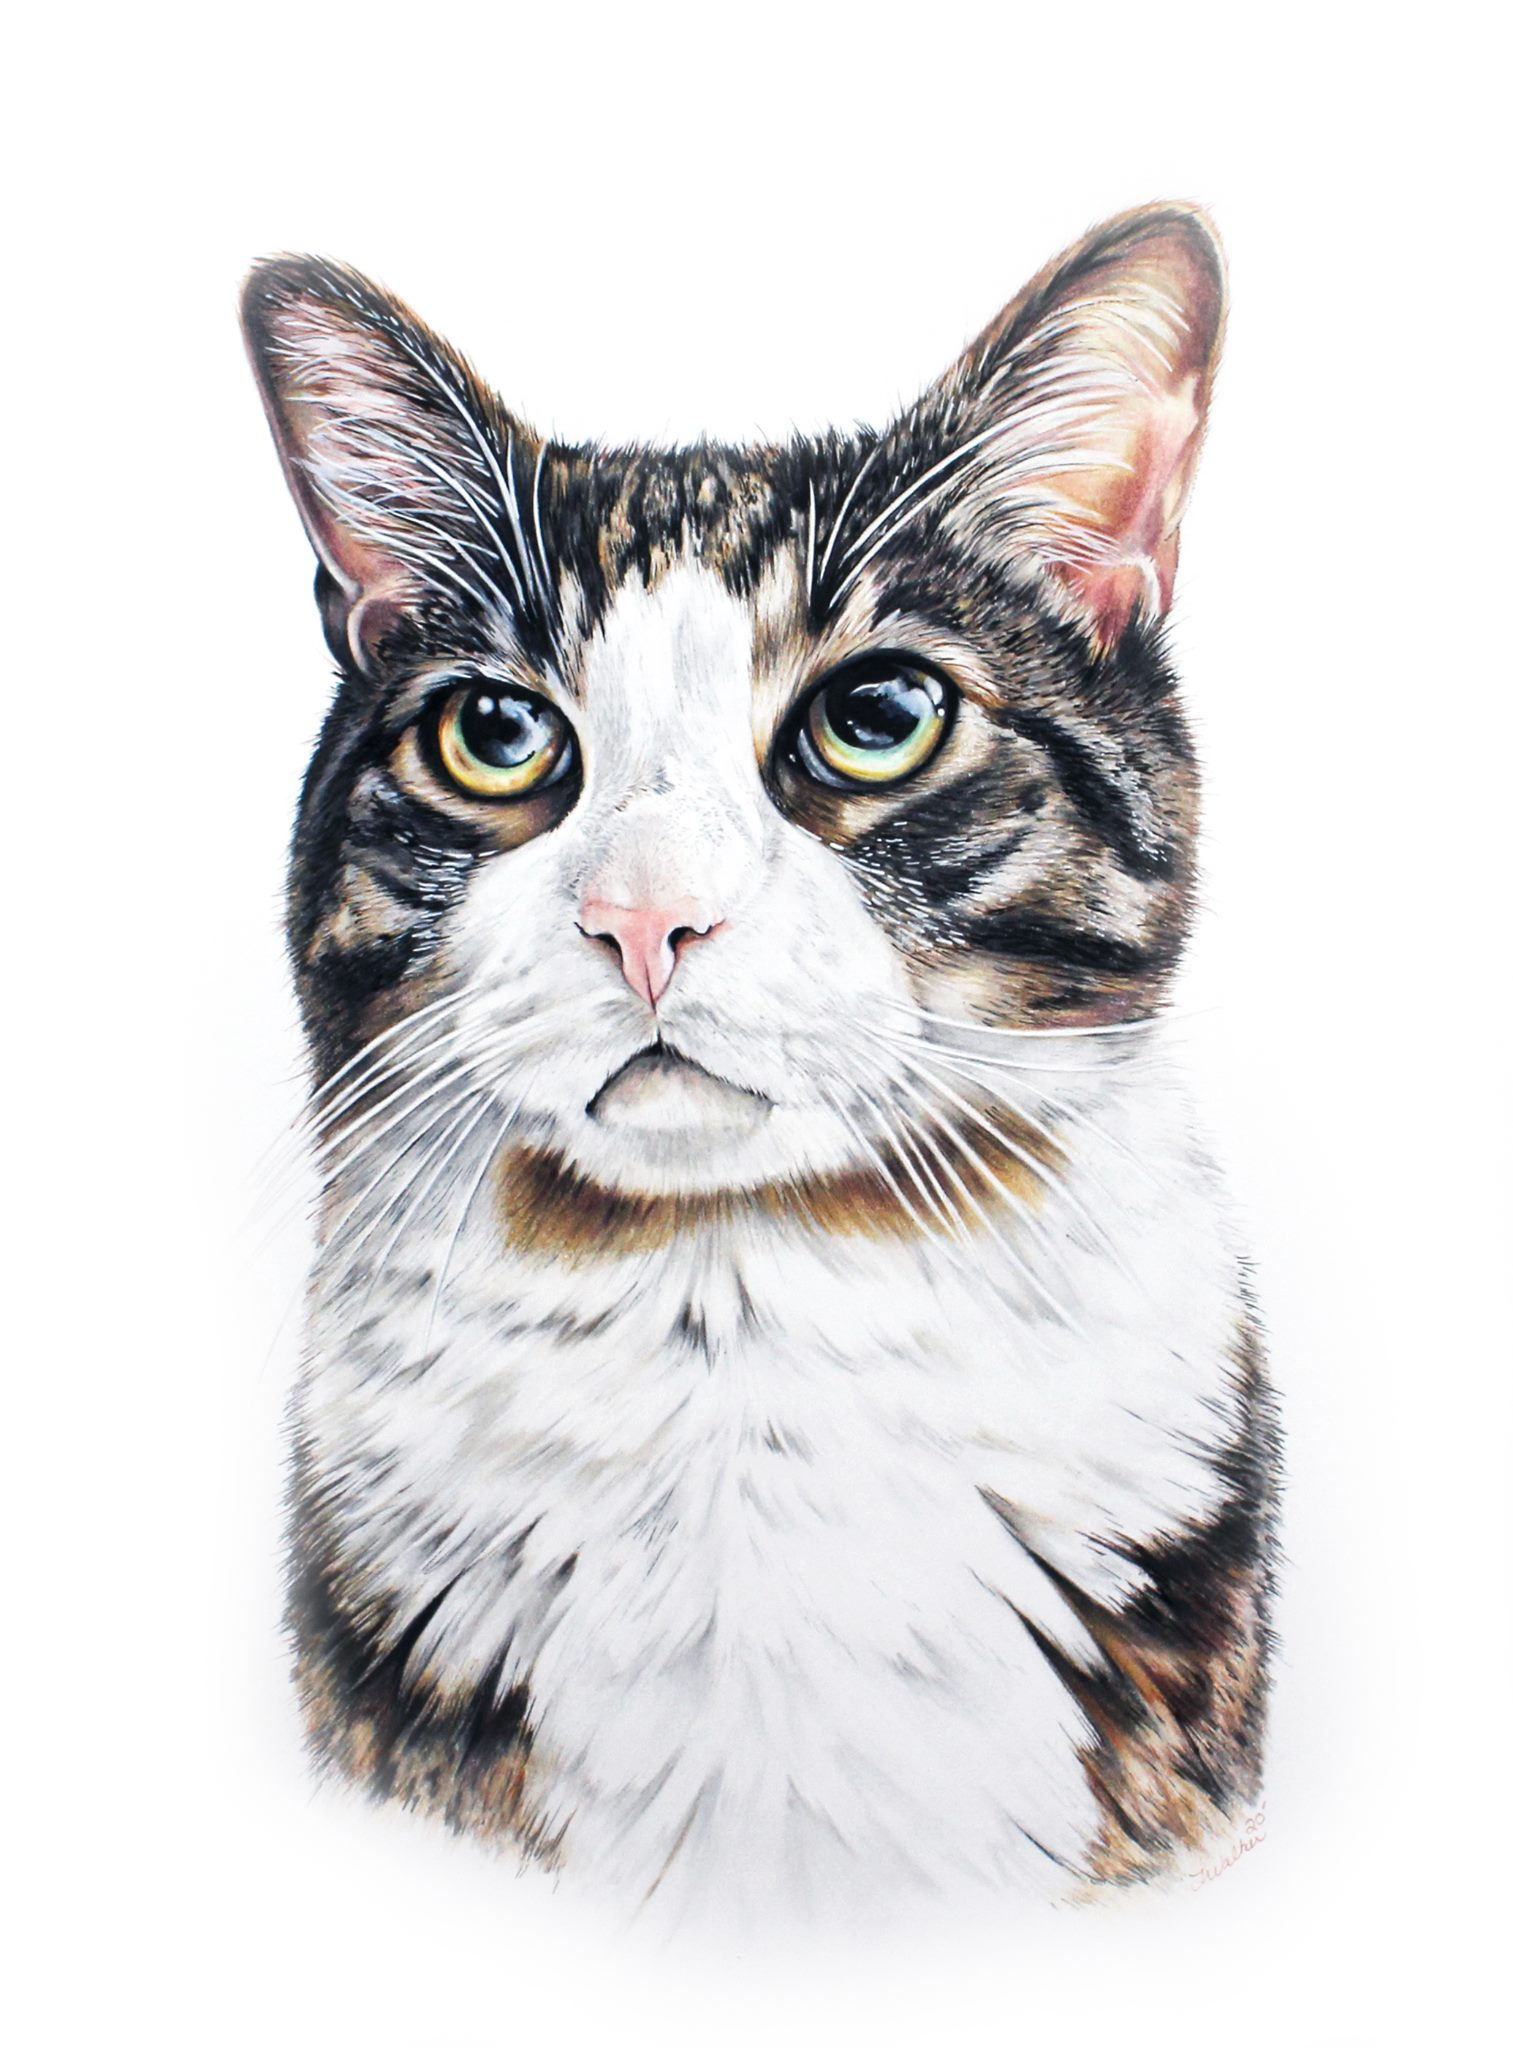 Classically Hand Drawn Colored Pencil Pet Portrait of Striped & White Tabby Cat by TayloredIllustrat